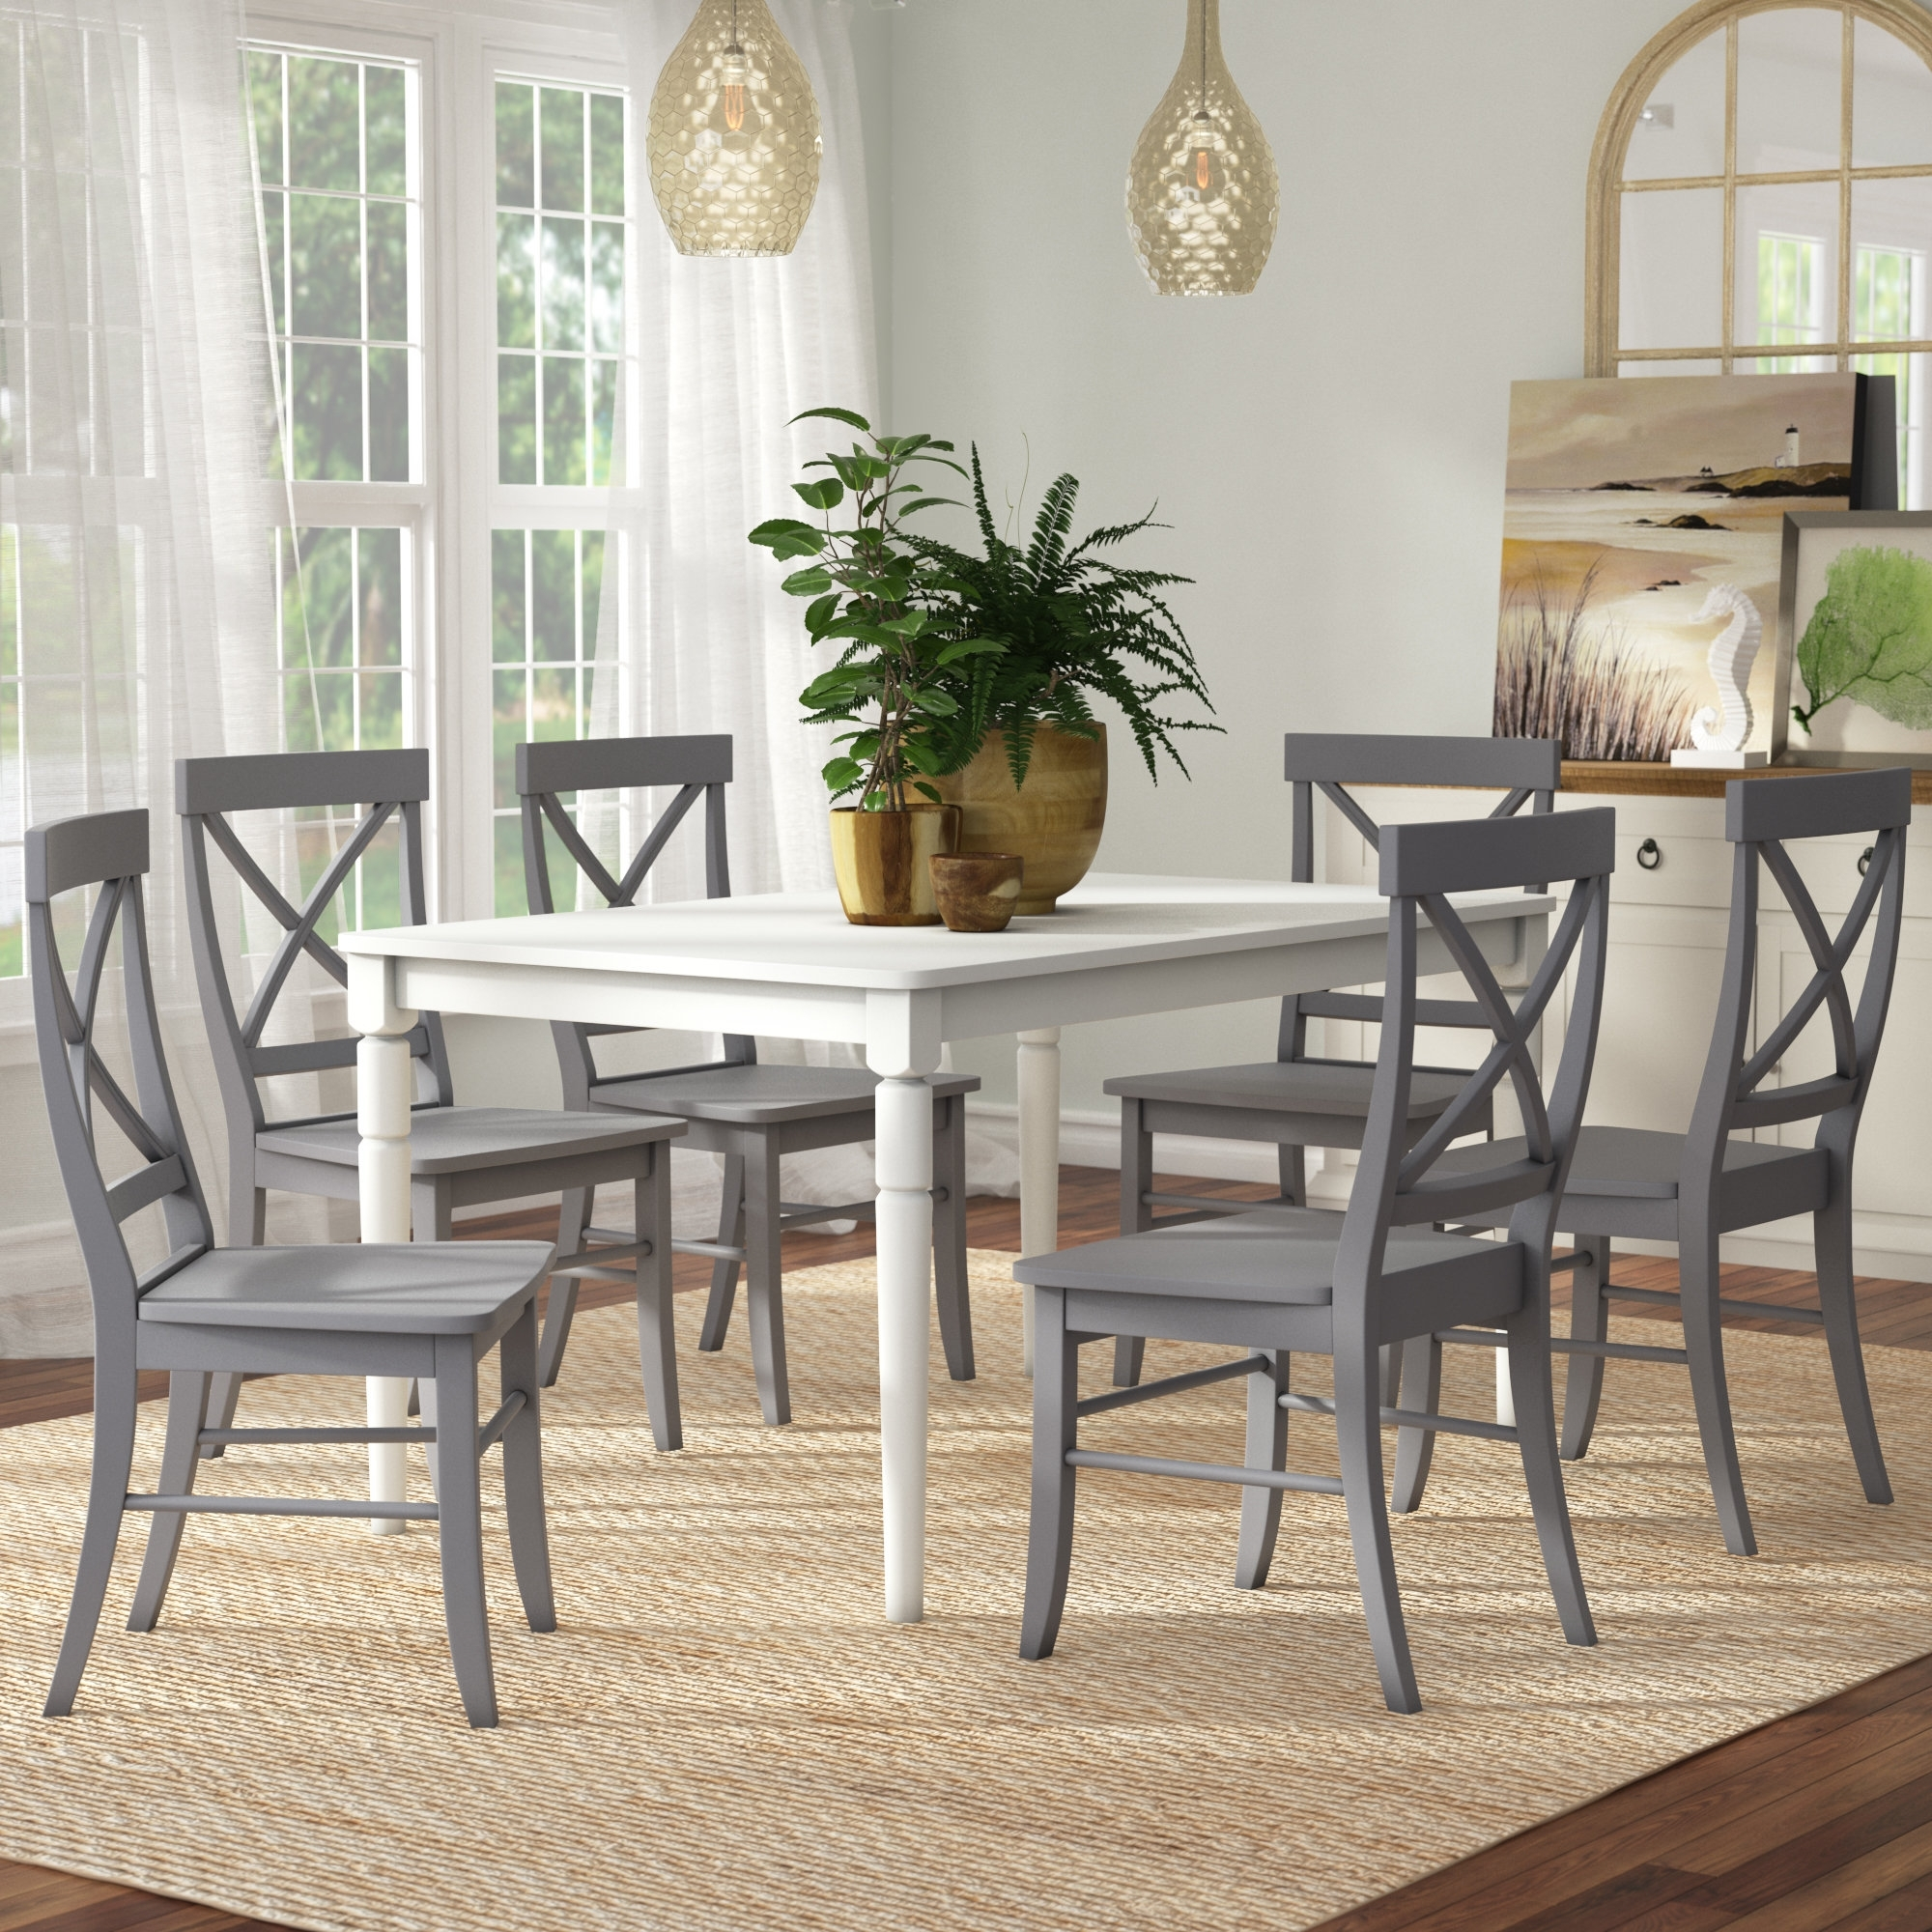 Most Recent Beachcrest Home Brookwood 7 Piece Dining Set & Reviews (View 17 of 25)